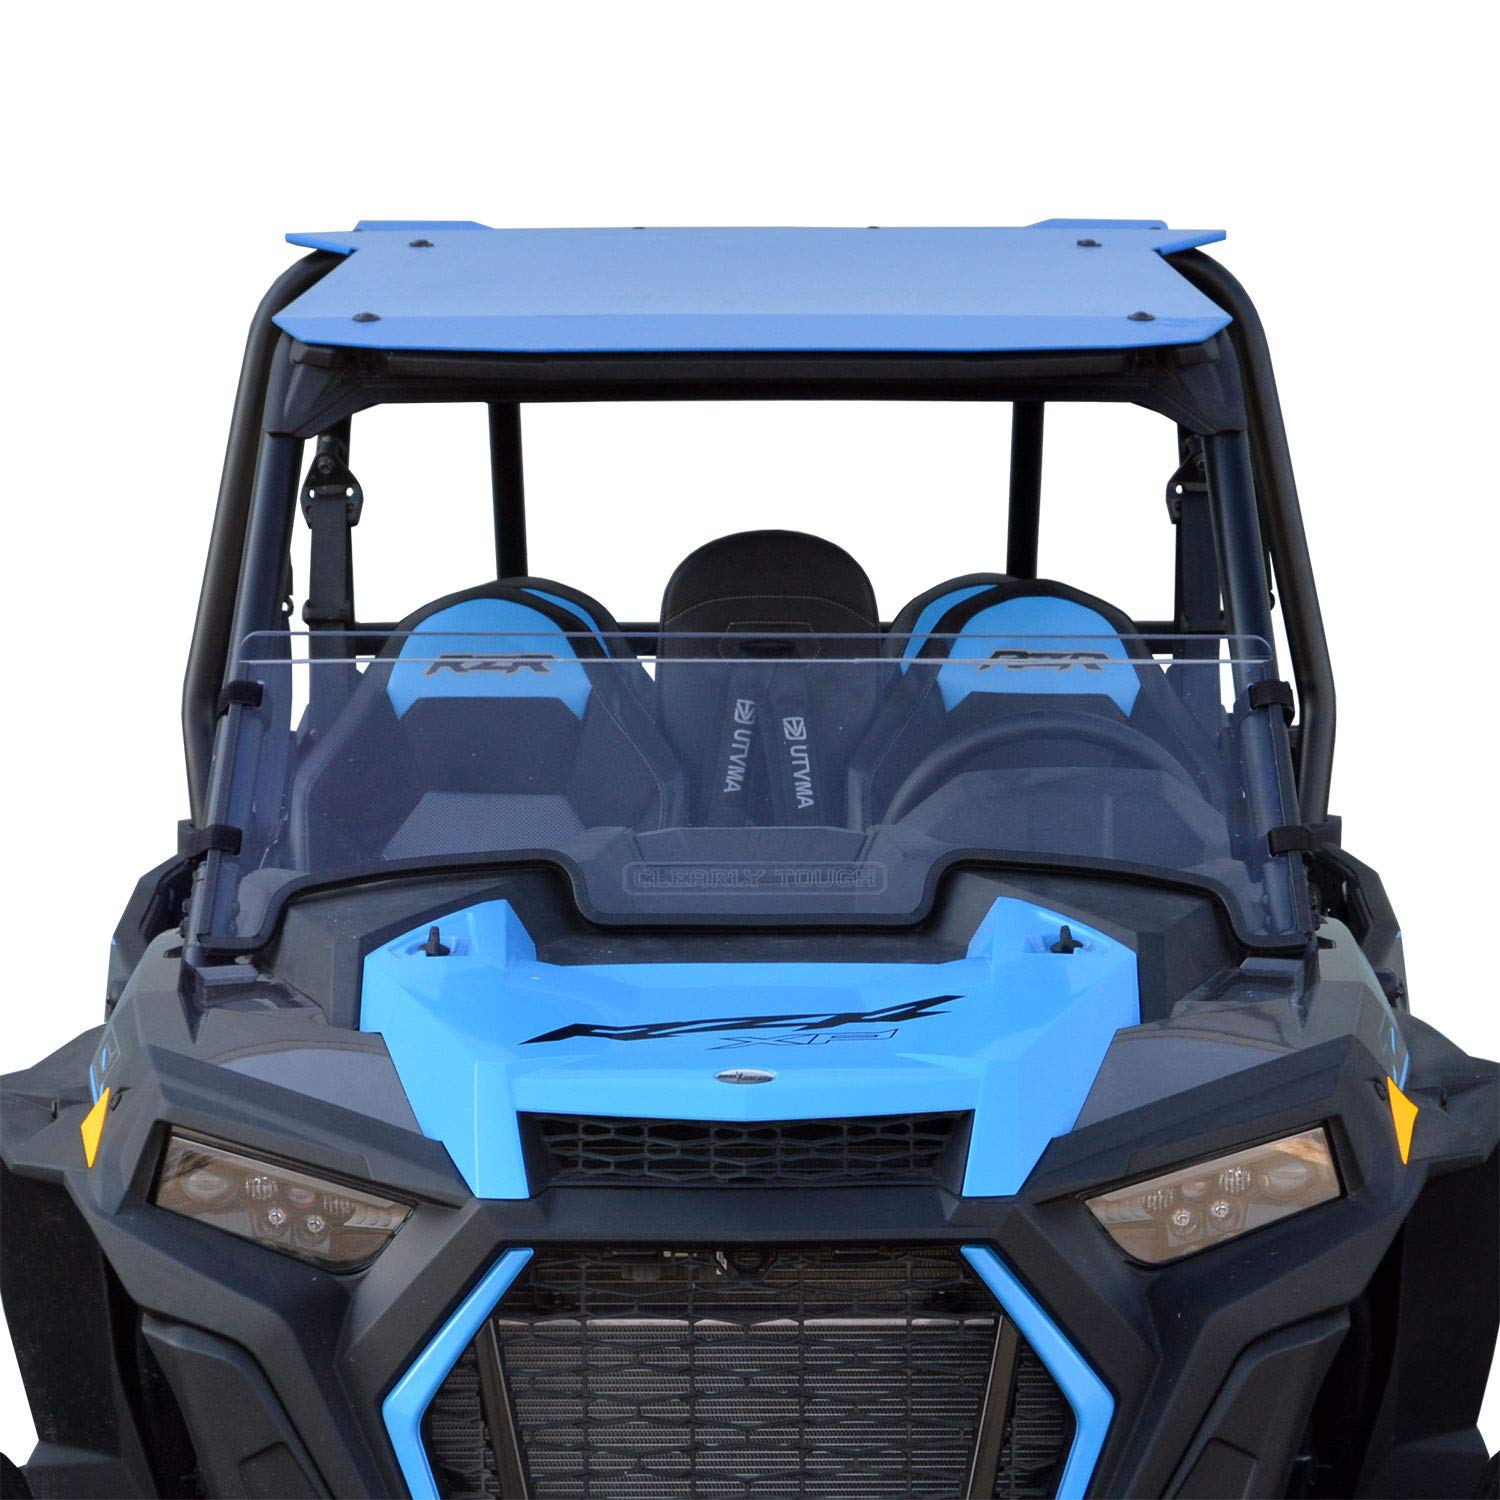 SCRATCH RESISTANT Easy on//Easy off! Hard CoatMade in America! 2019 Polaris RZR 1000 Half Windshield